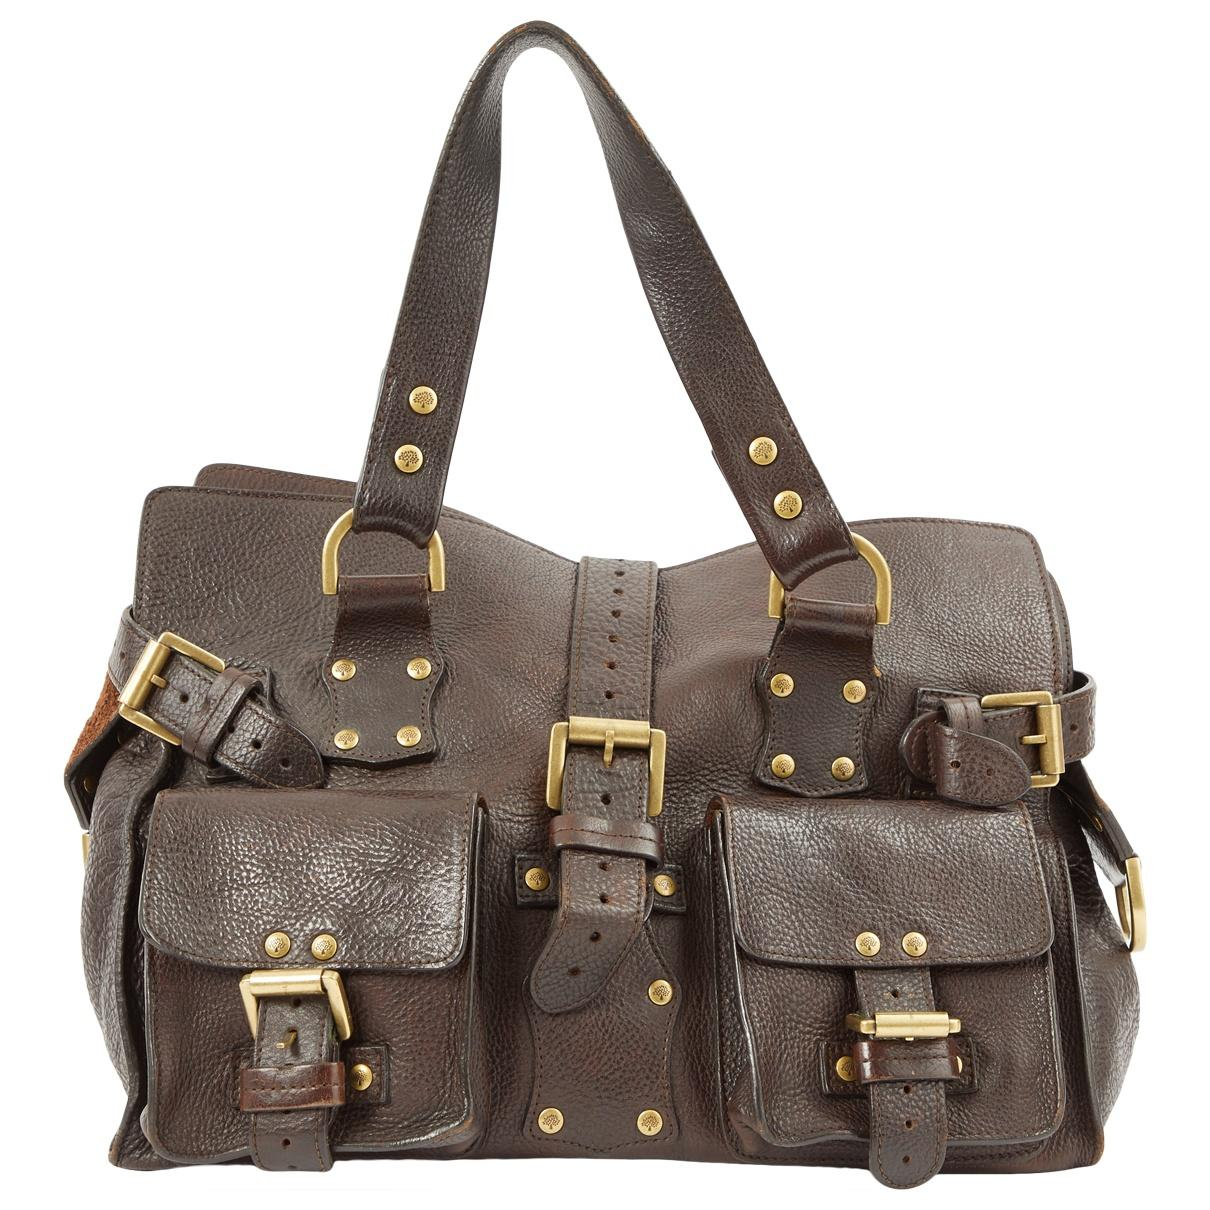 09e992ae07 Lyst - Mulberry Roxanne Brown Leather Handbag in Brown